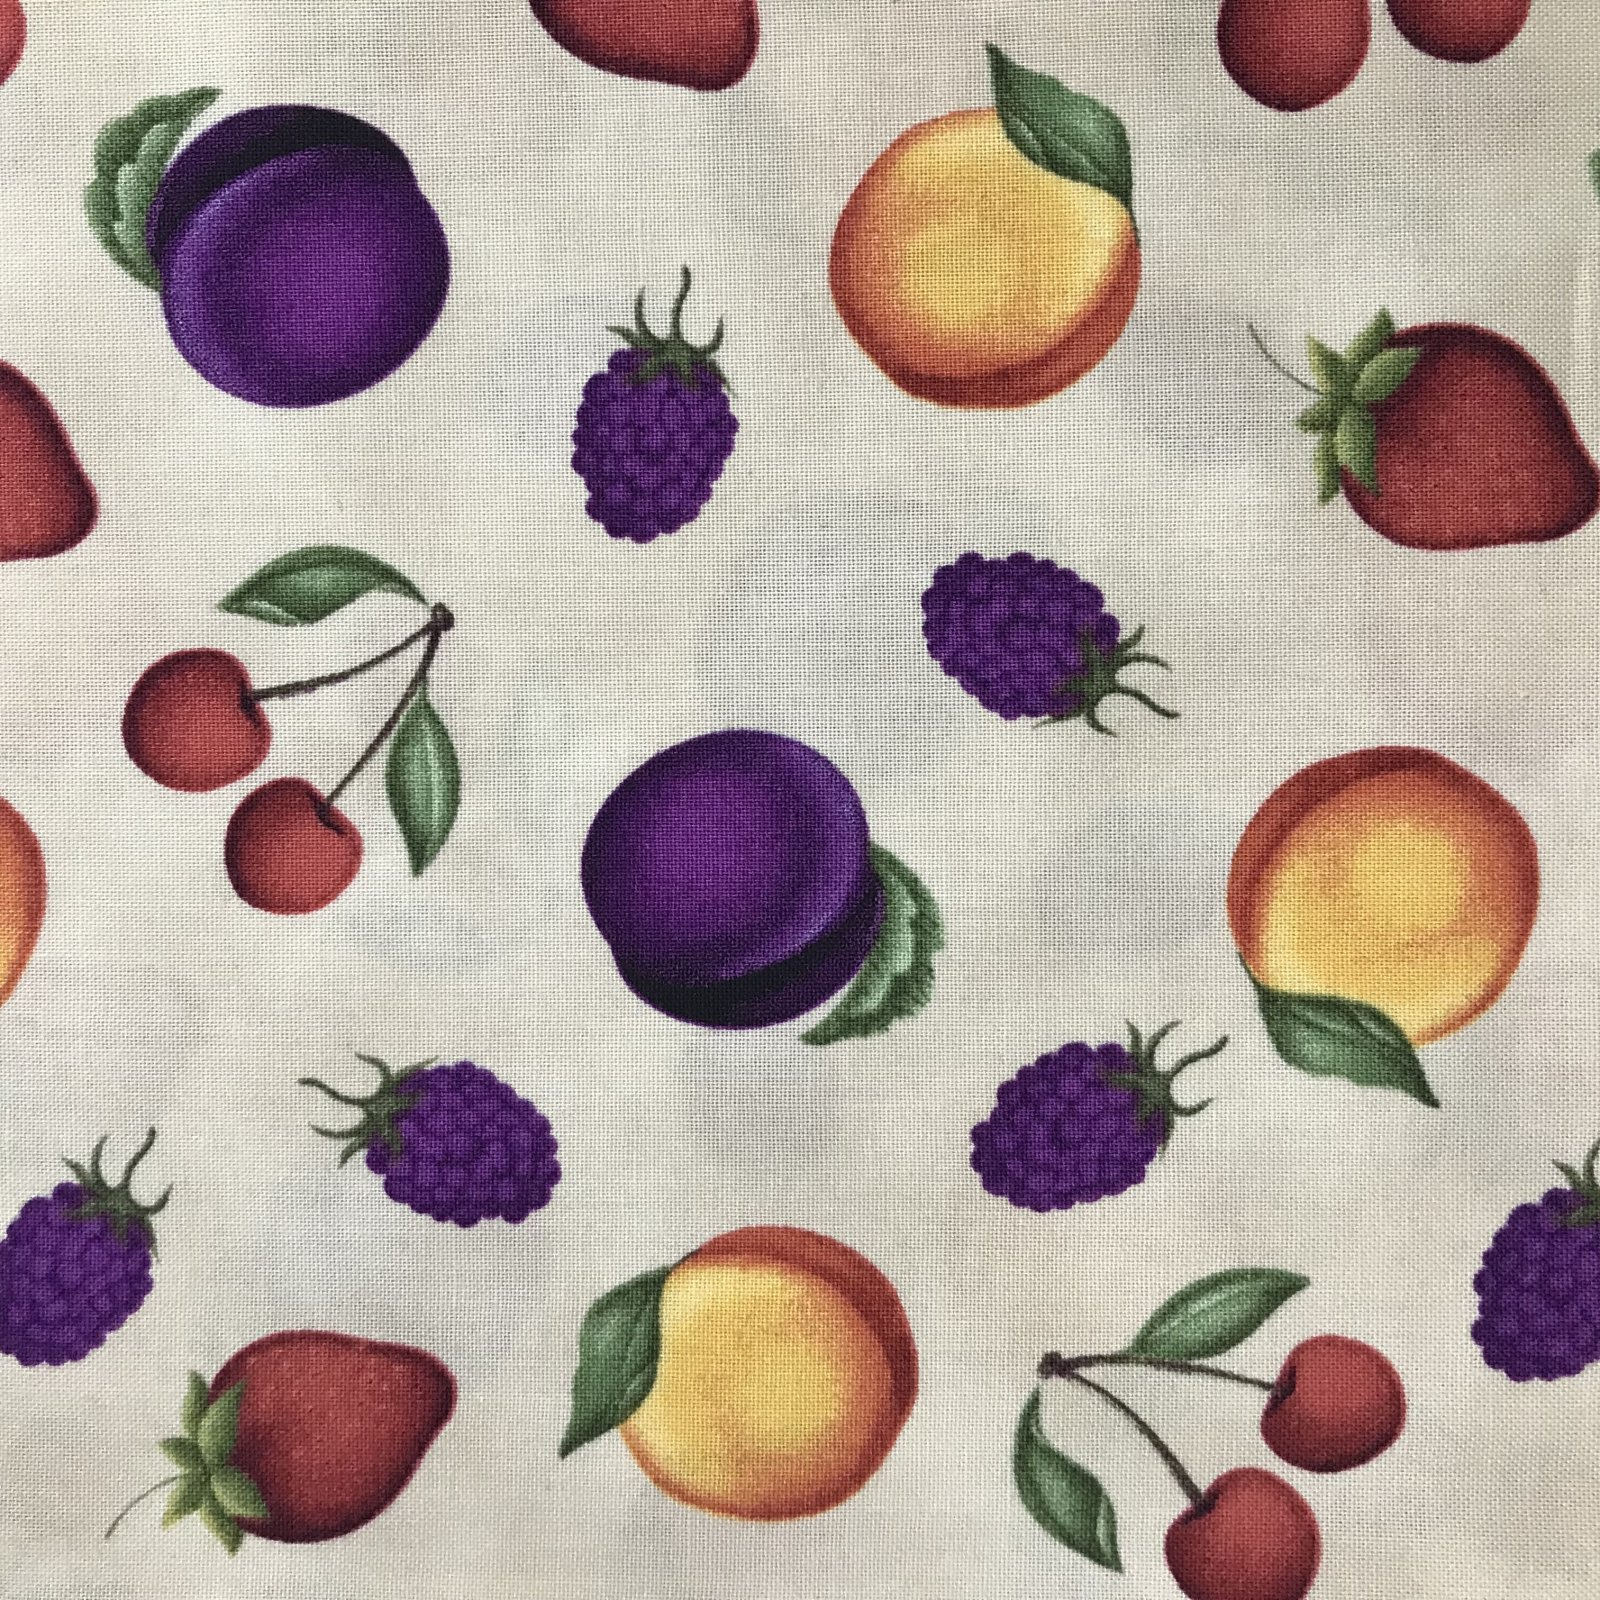 Fruit Basket by Quilting Treasures 1649 22343 A 4011 TAN